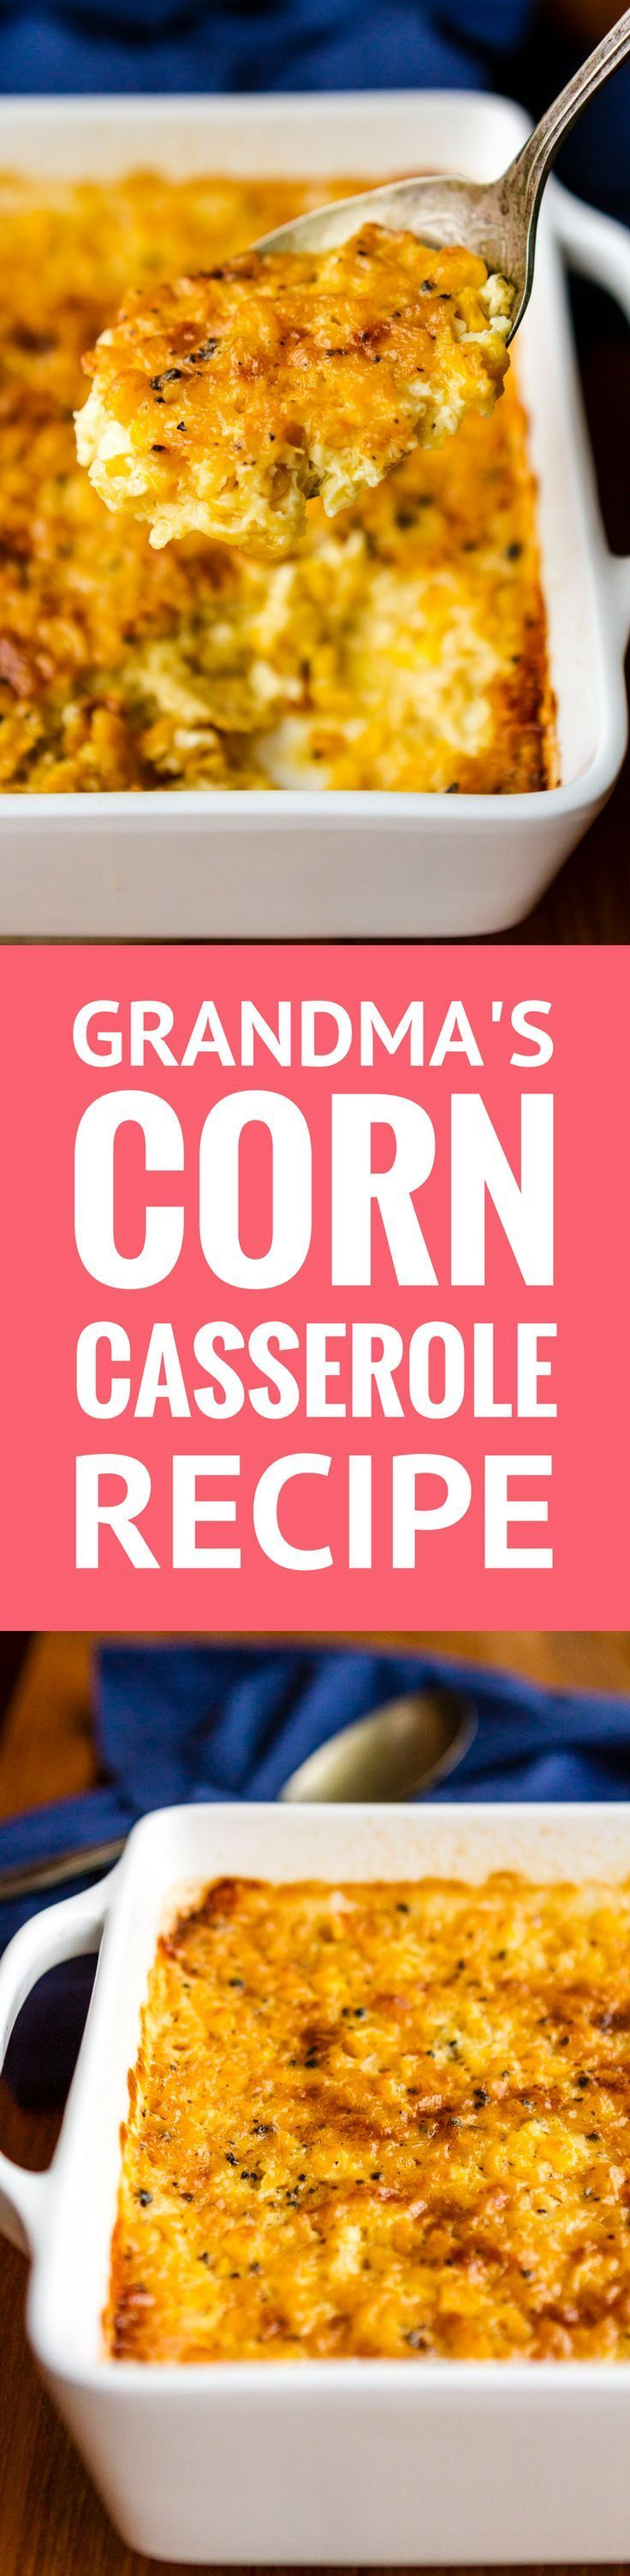 Corn Casserole Recipe -- This creamed corn casserole recipe is SO good you'll want to scrape the dish completely clean to get every last bit of caramelized goodness from the corners! It's on the menu for every family gathering I host… | baked creamed corn casserole | sweet corn casserole | corn casserole from scratch | easy corn casserole recipe | custard corn | corn pudding | find the recipe on unsophisticook.com #thanksgiving #thanksgivingrecipes #sidedishes #corncasserole